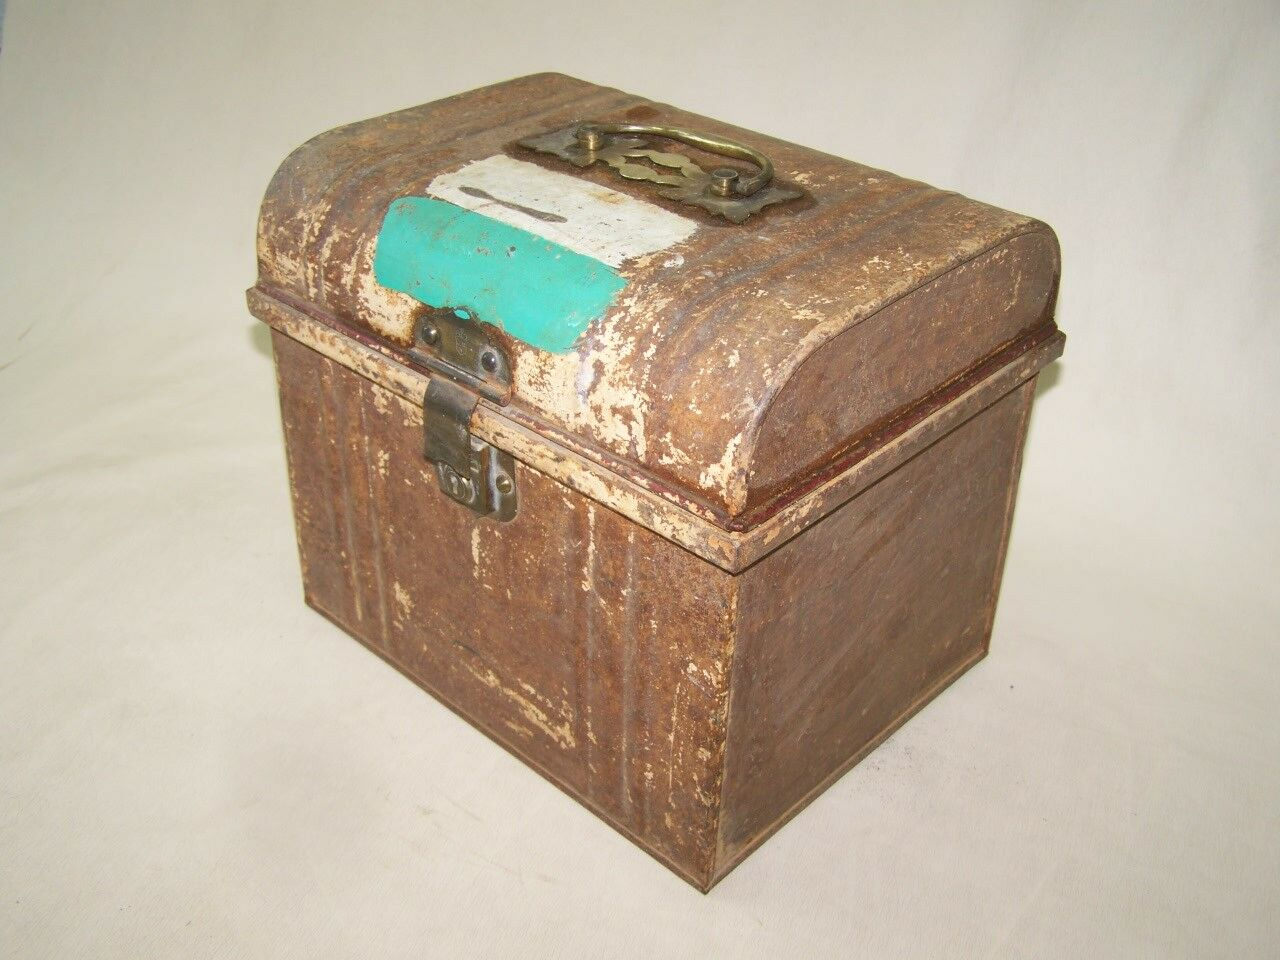 Little old Jalopy, Sheet Metal Chest Box, Treasure chest, Antique, LONDON